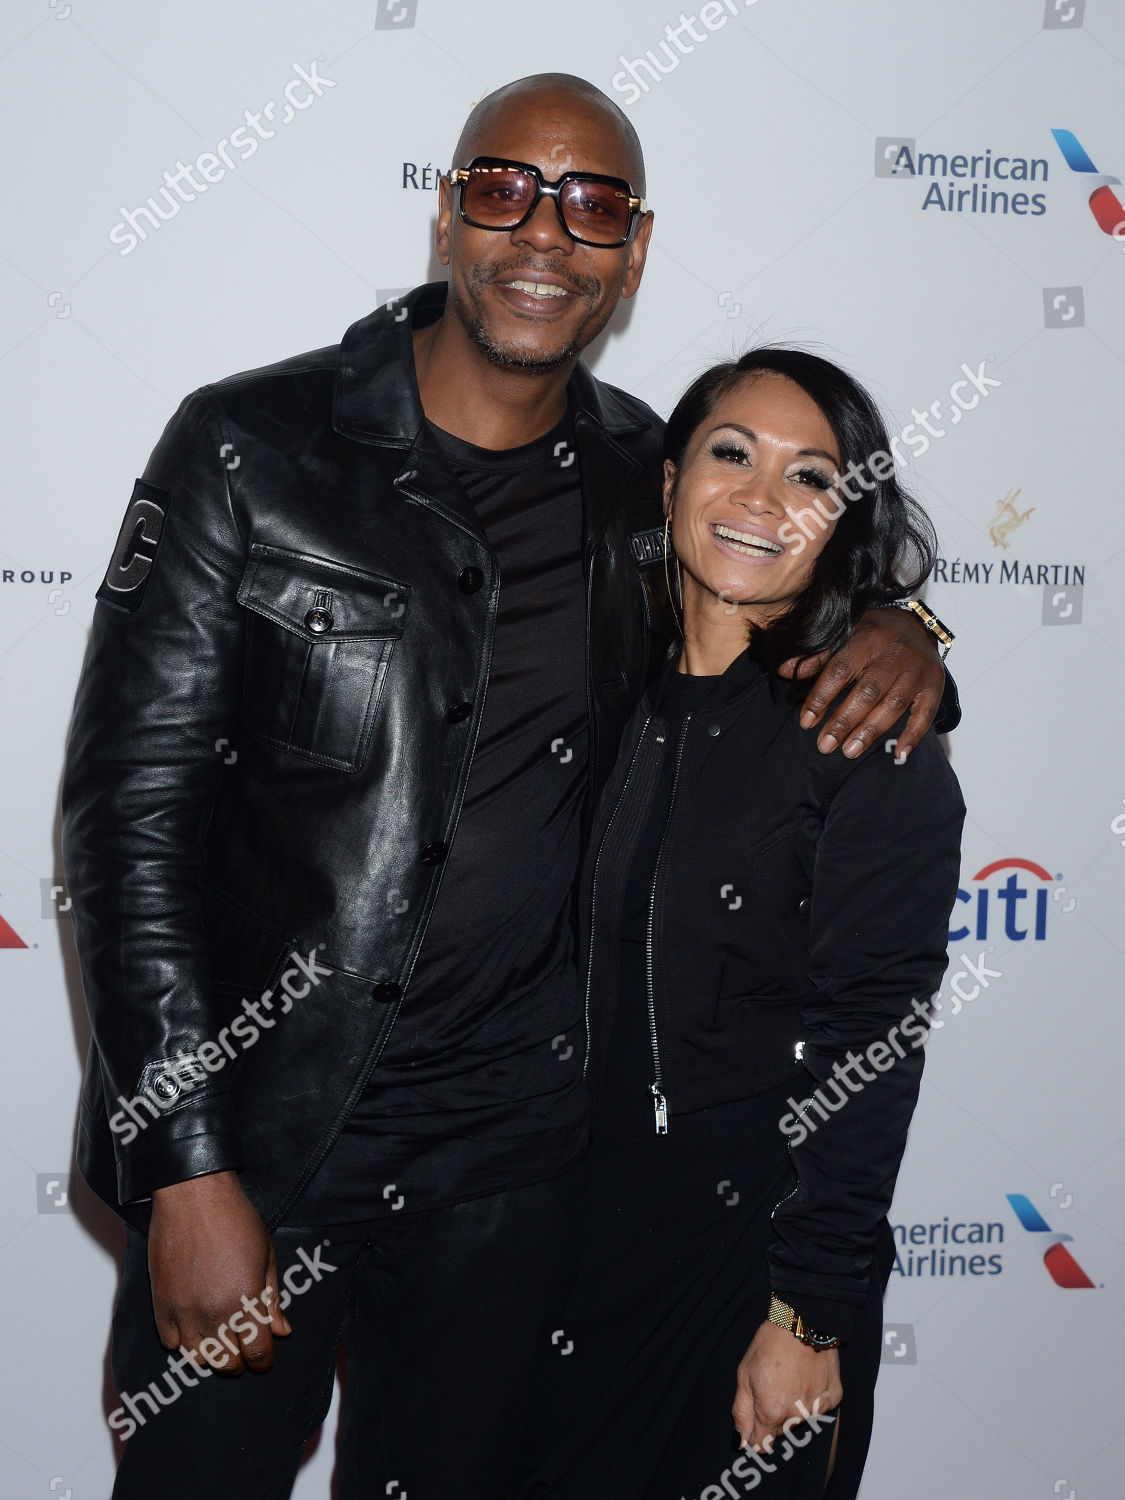 dave chappelle wife elaine chappelle editorial stock photo stock image shutterstock https www shutterstock com editorial image editorial universal music groups grammy after party arrivals new york usa 28 jan 2018 9337428y